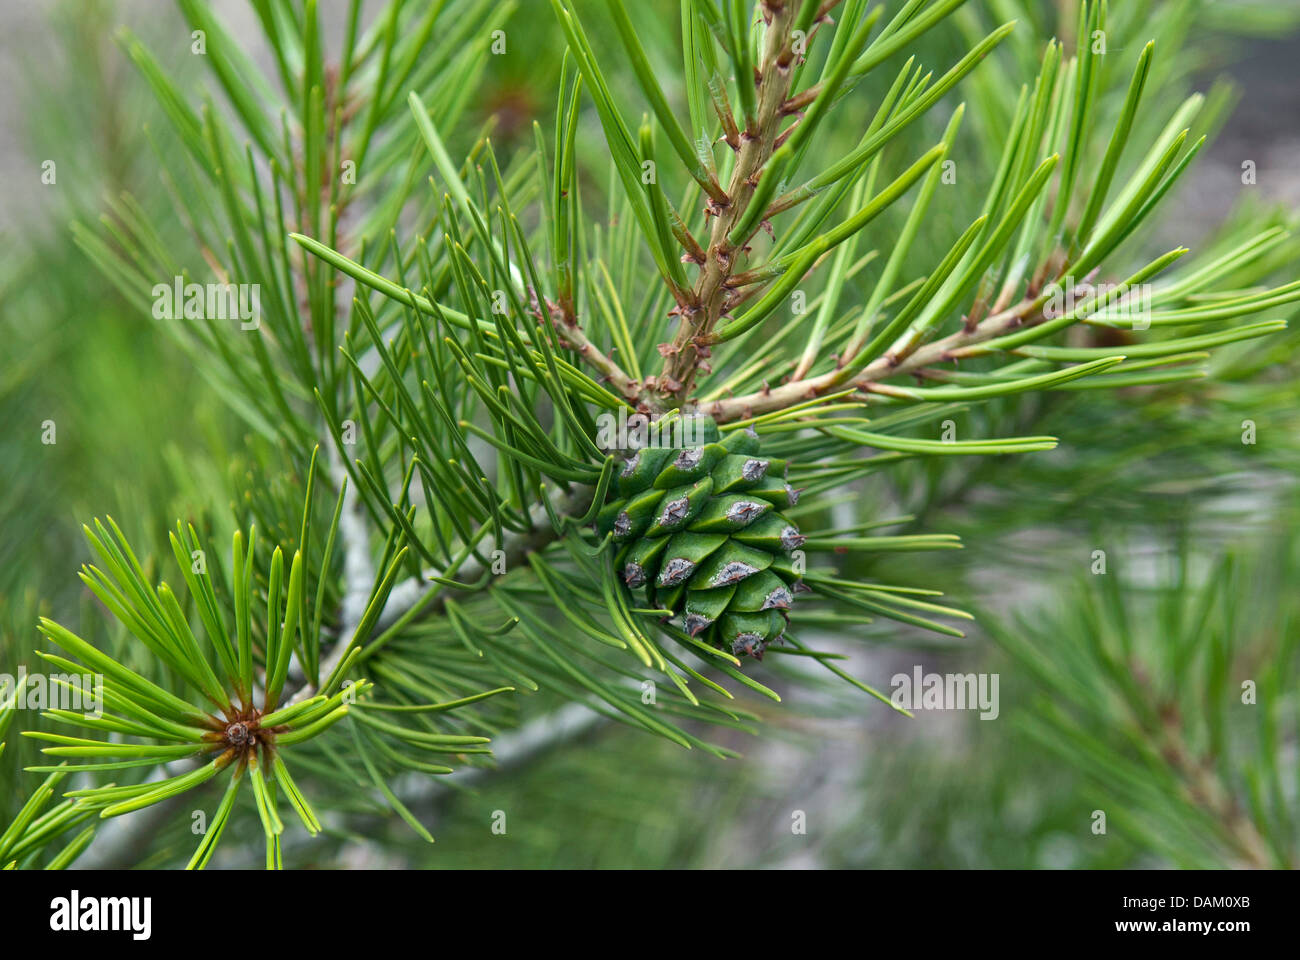 lacebark pine (Pinus bungeana), branch with young cone - Stock Image